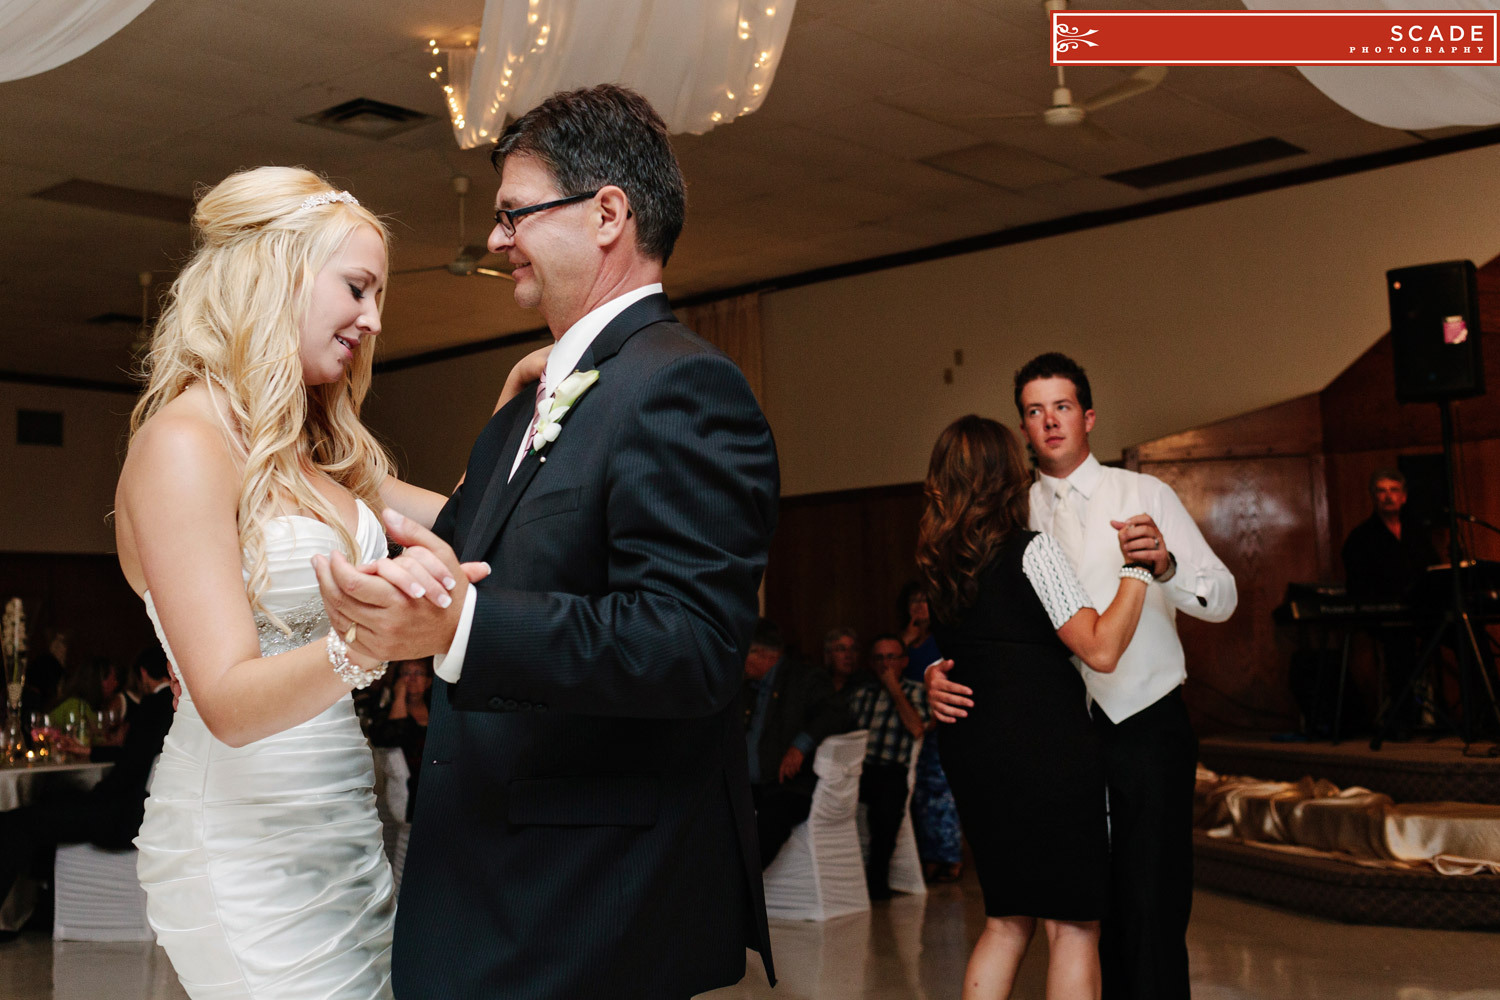 Lamont Wedding Photography - Brittney and Michael - 0047.JPG